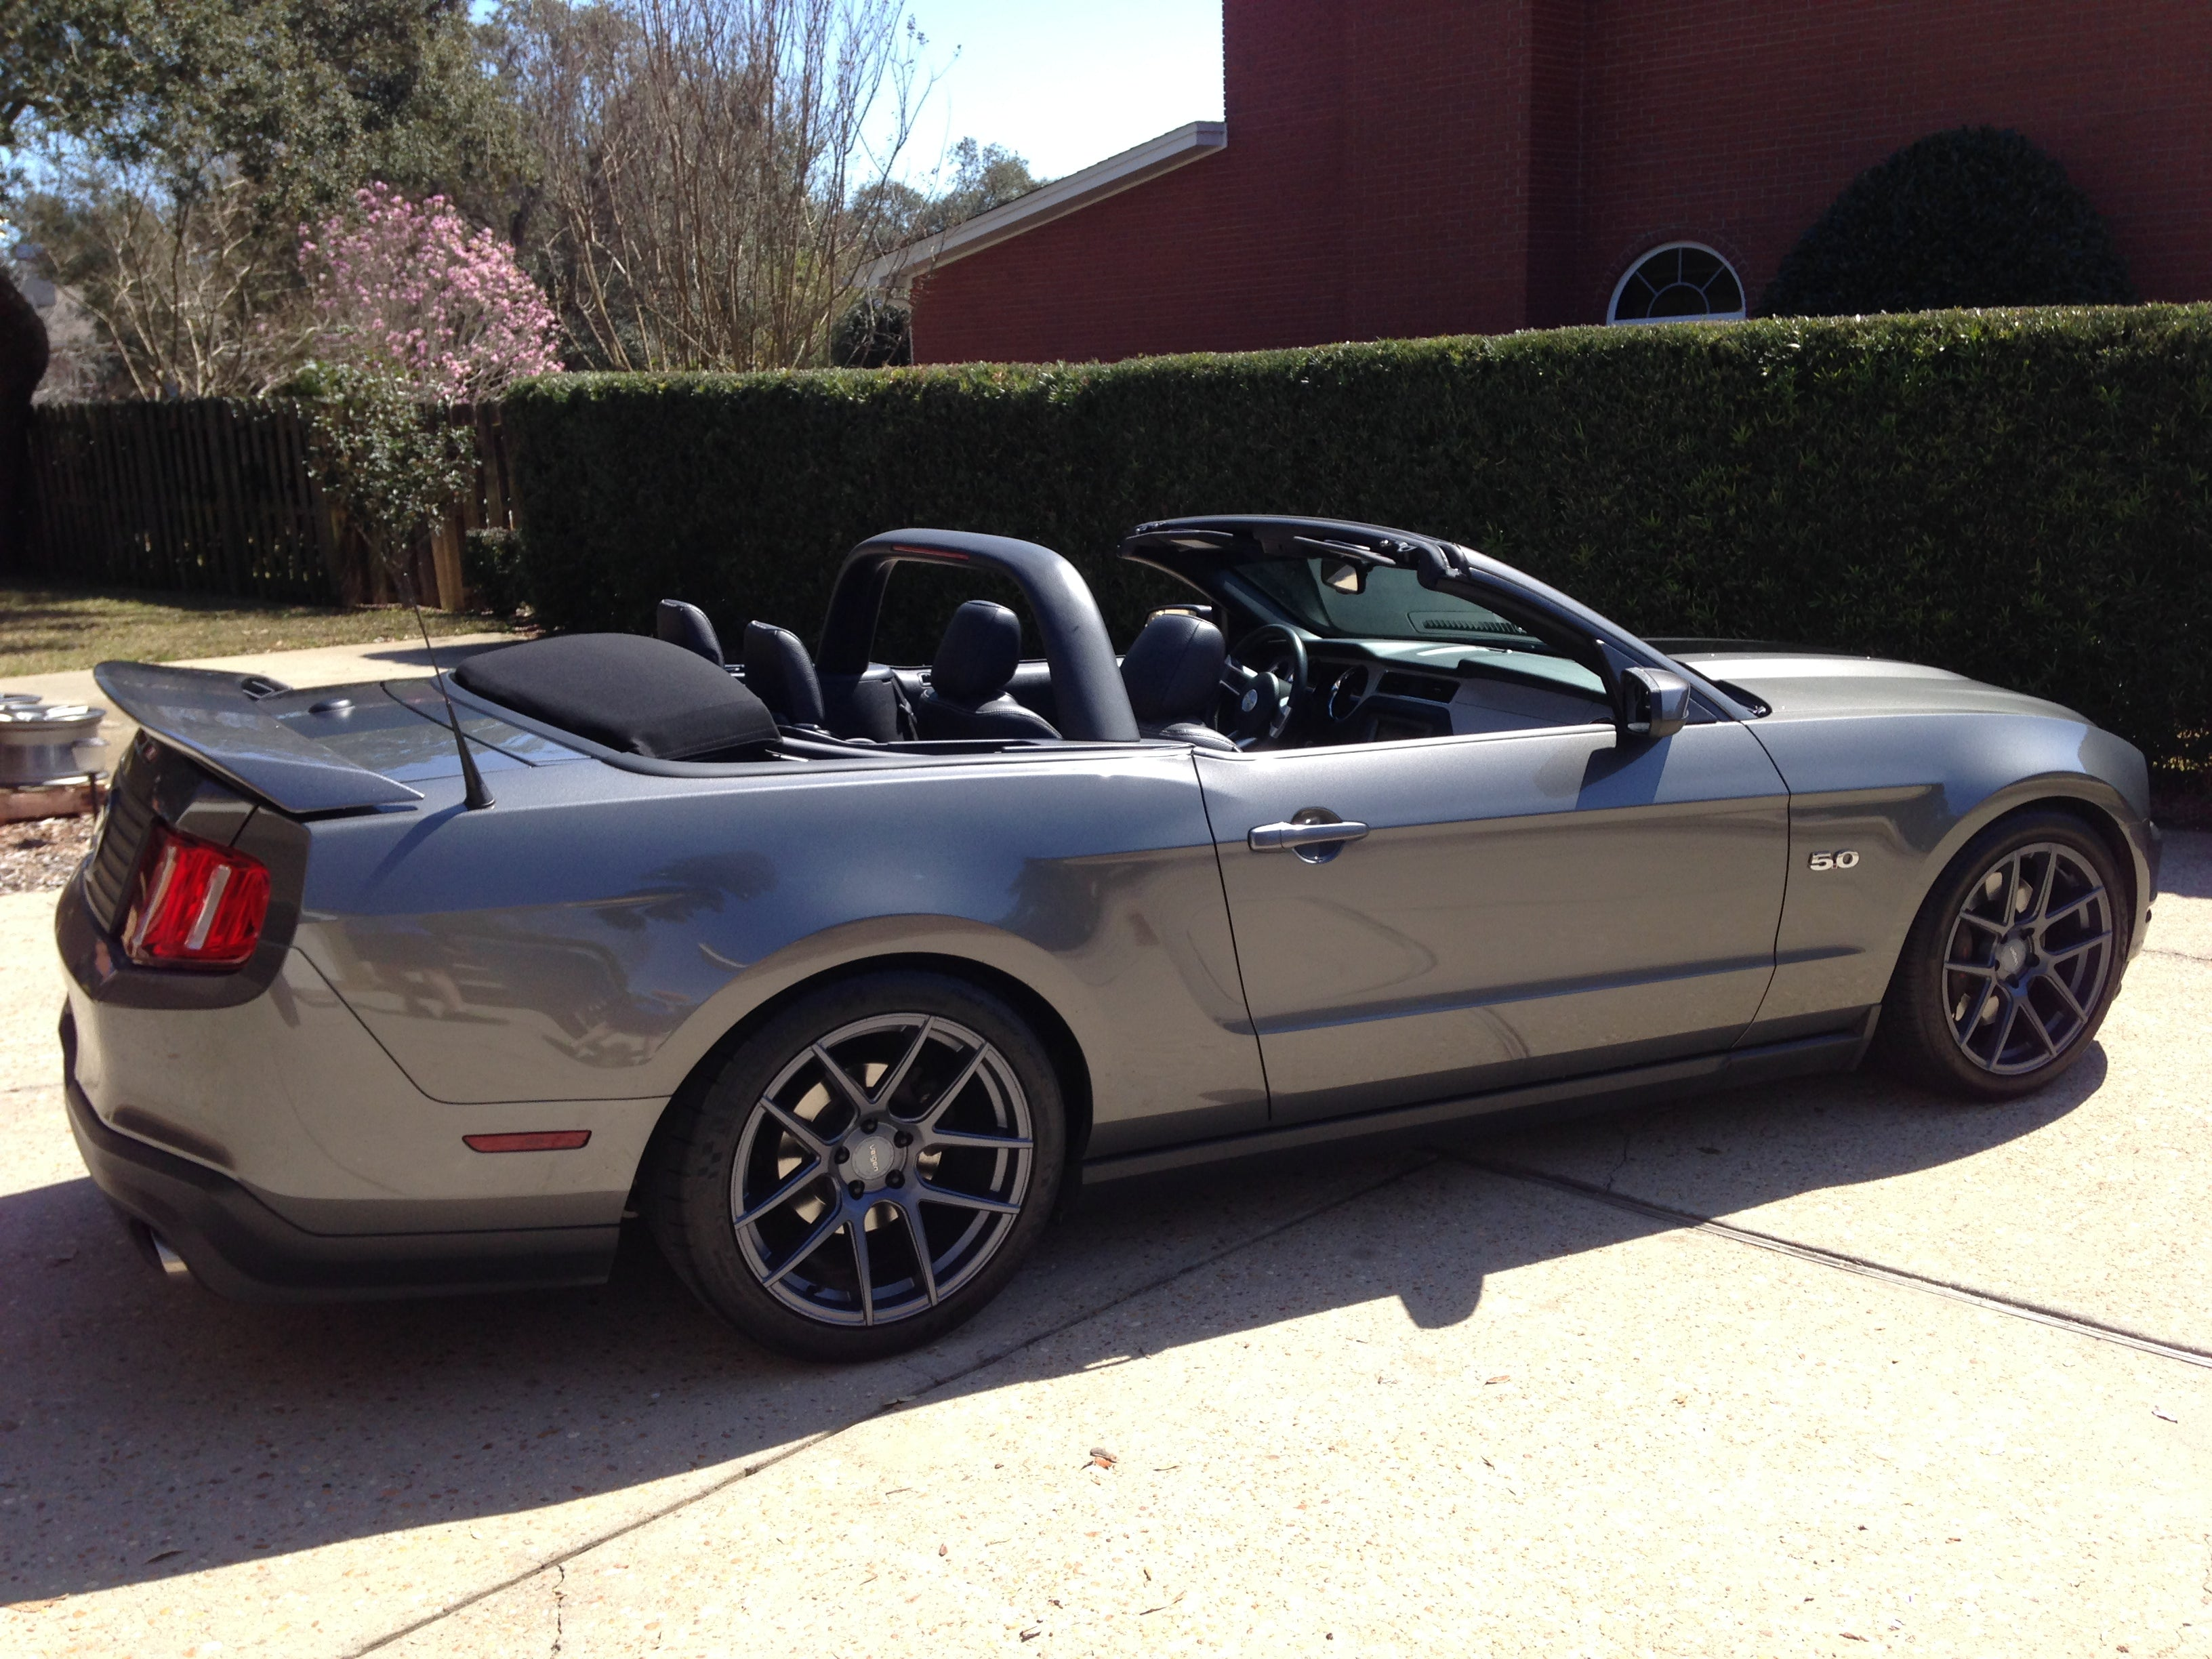 4--Ford Mustang 5.0 Vert